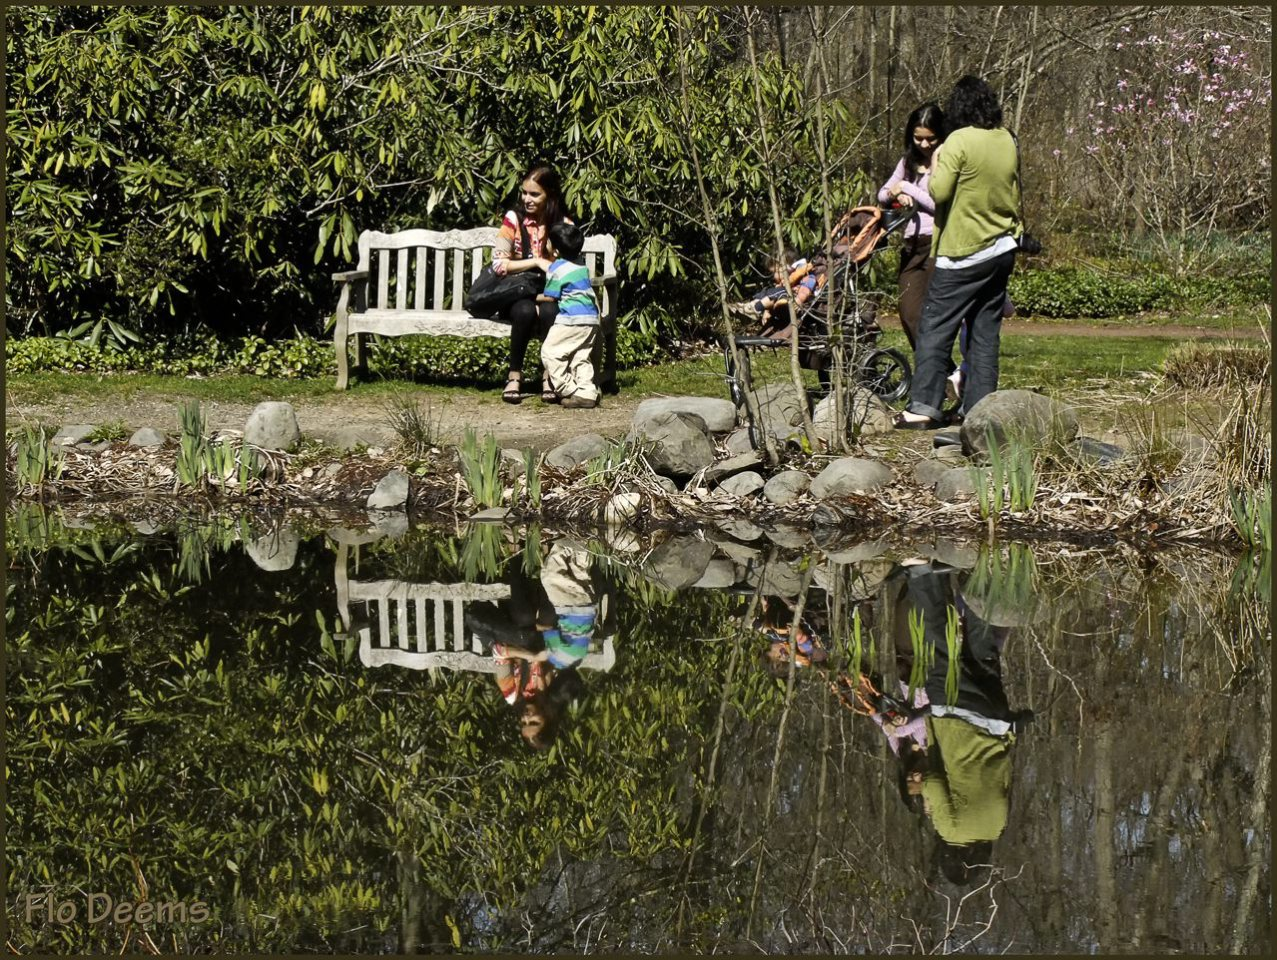 Views from the Bench, Sayen Gardens, Pond & Bridge, by Florence W Deems